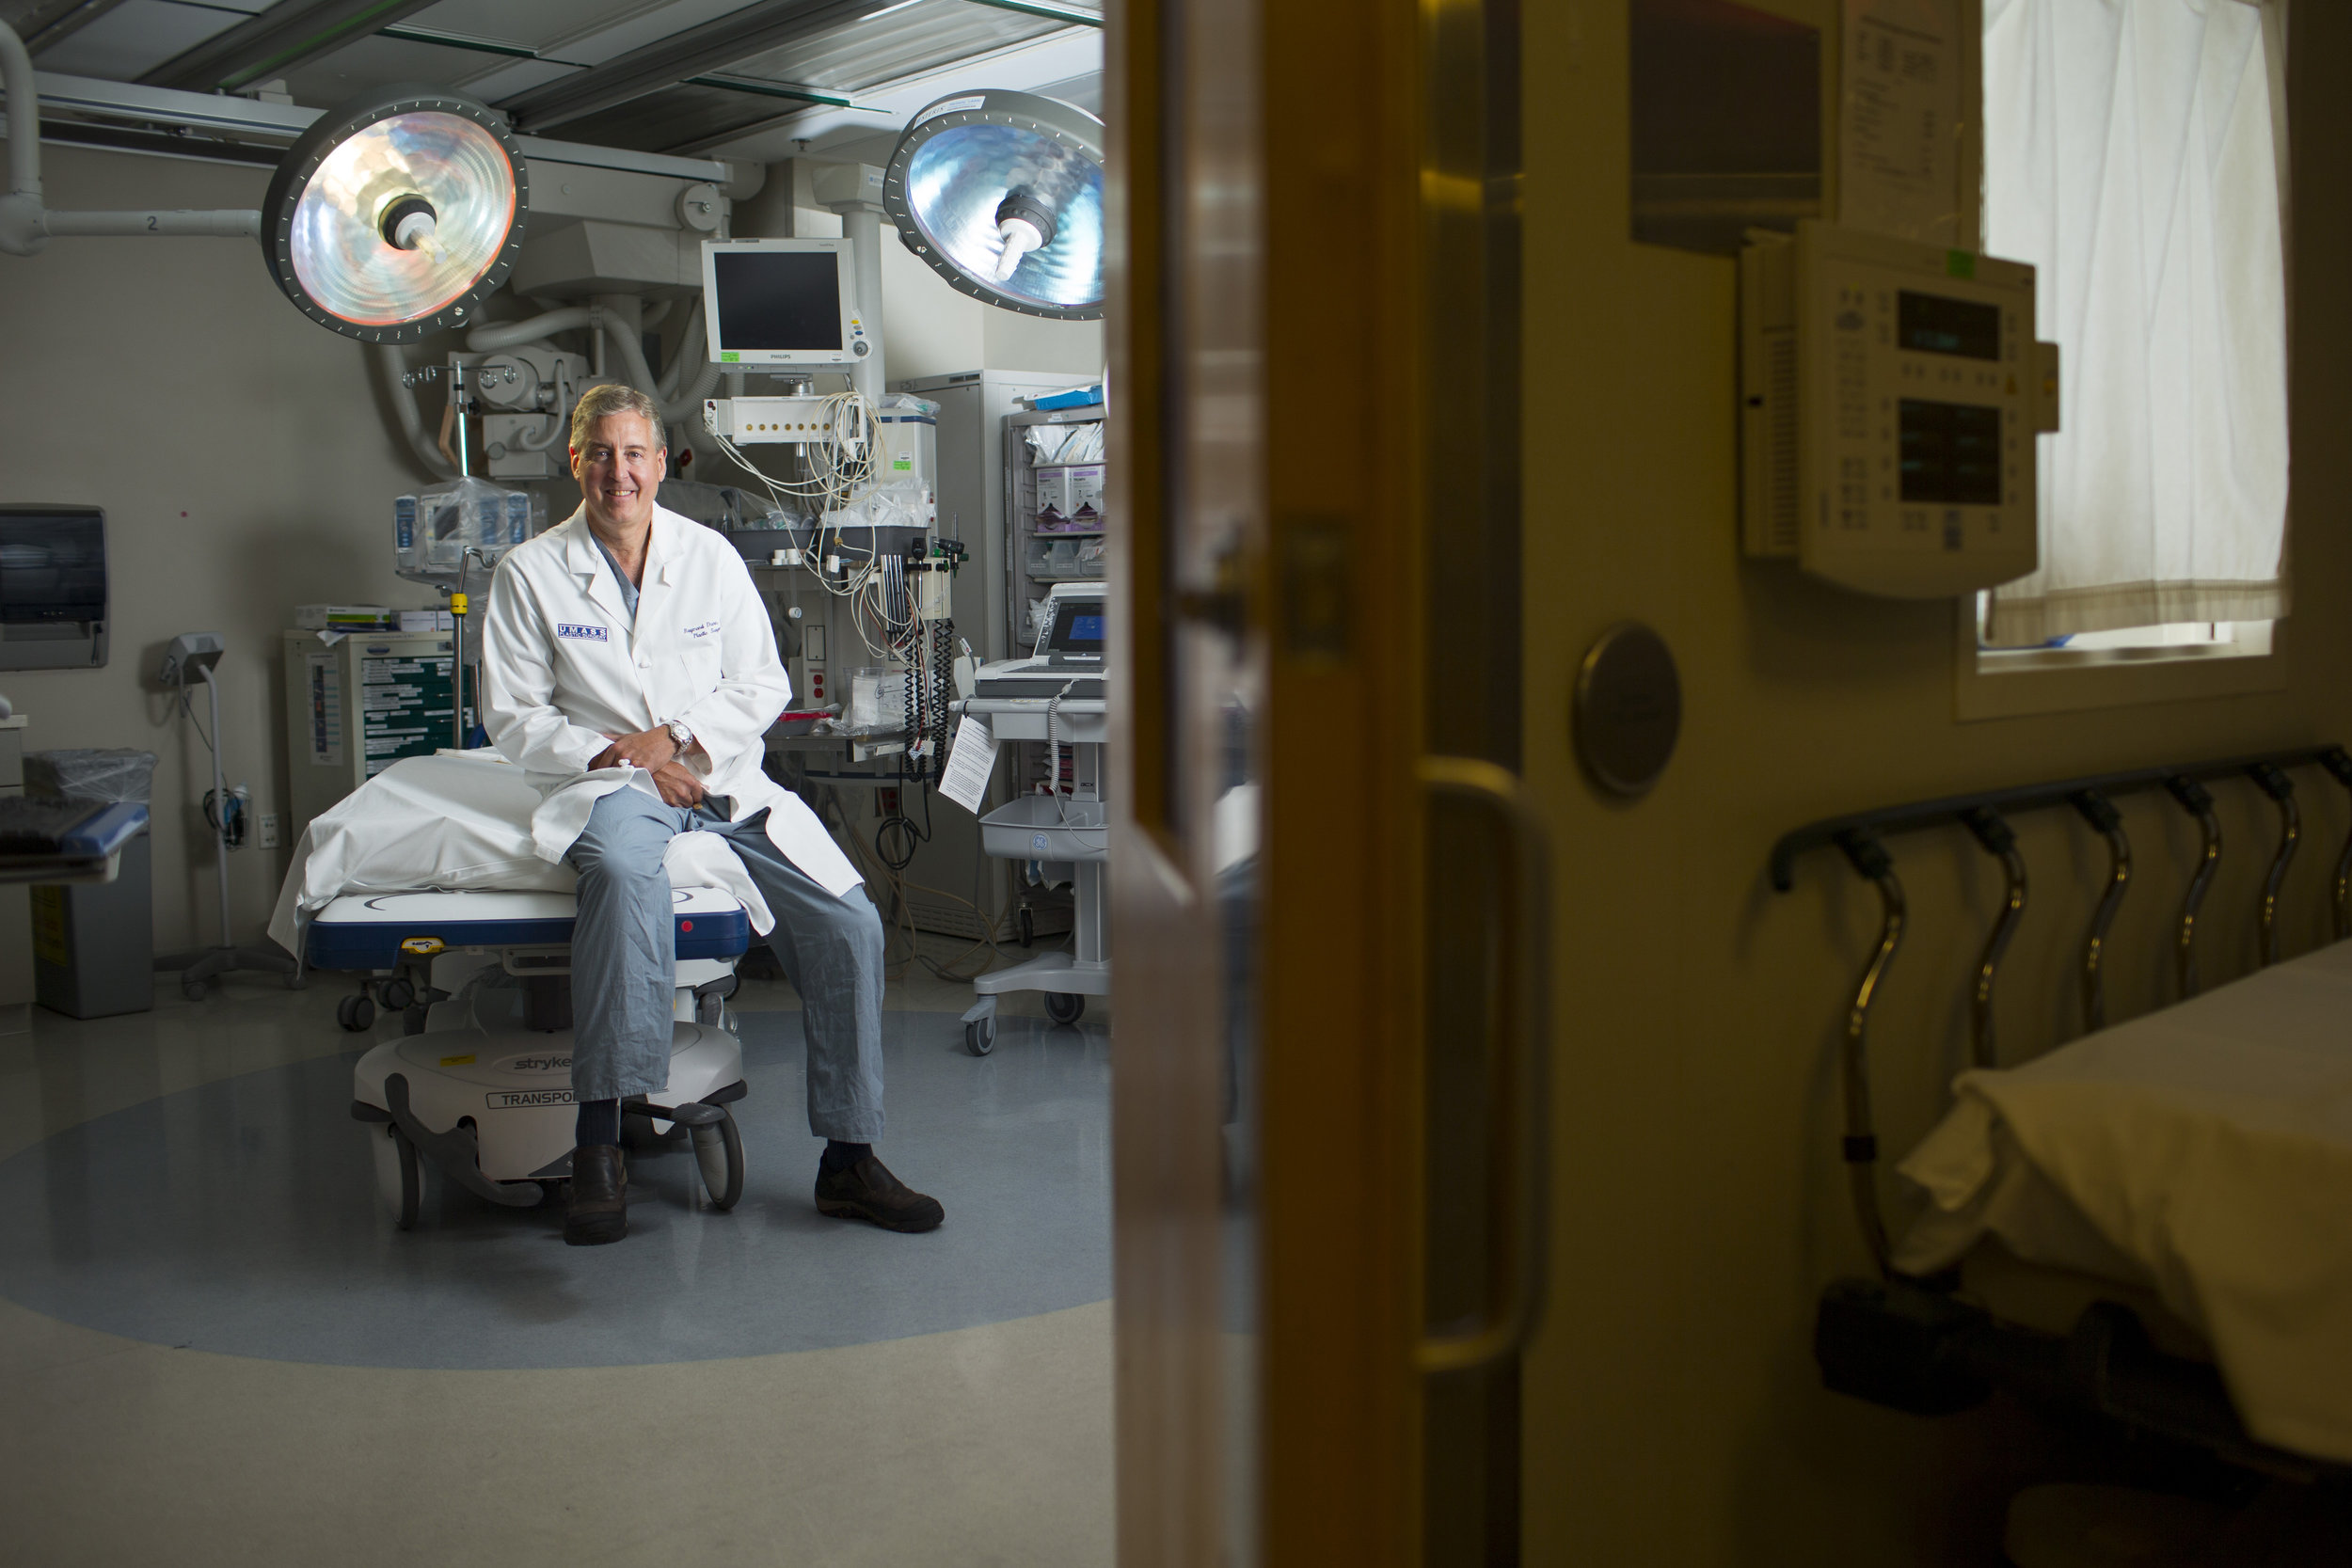 Raymond M. Dunn, MD, Professor and Chief, UMass Memorial Plastic Surgery, is photographed in one of the trauma unit bays at UMass Memorial Hospital in Worcester, Massachusetts on July 28, 2017.